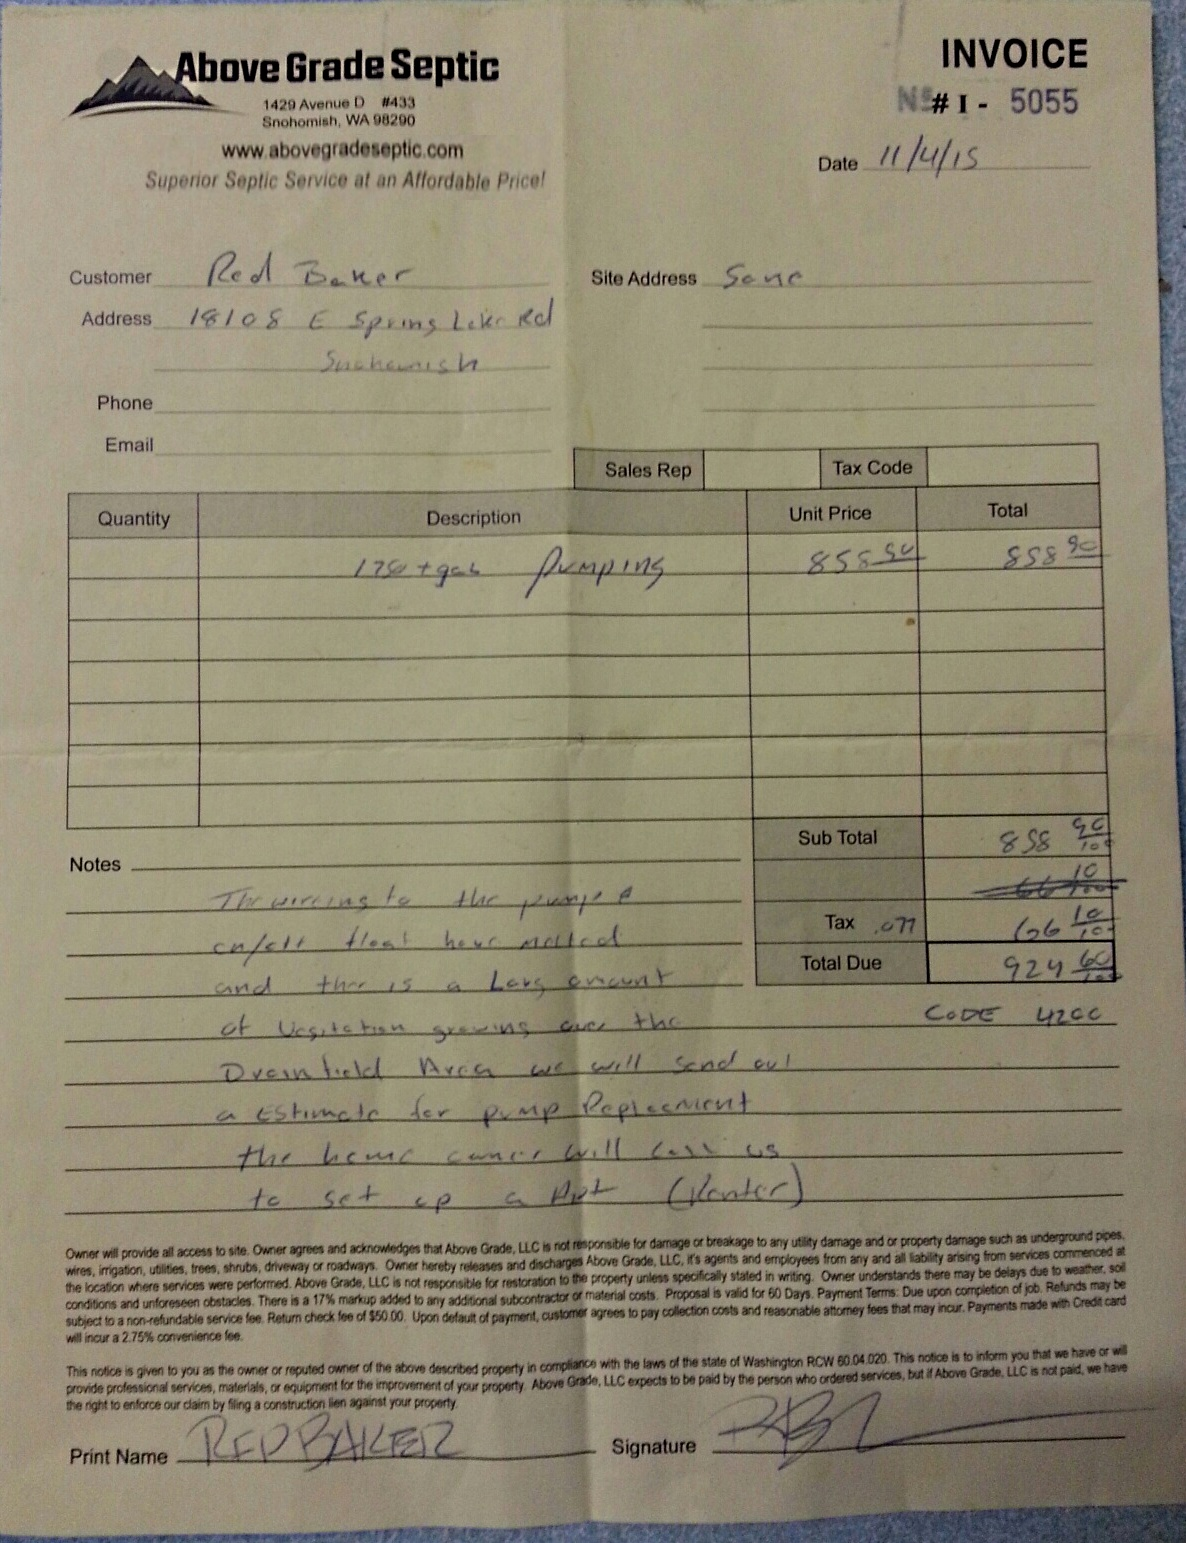 Cabin Maintenance Record pump service invoice from poopy smelling guy